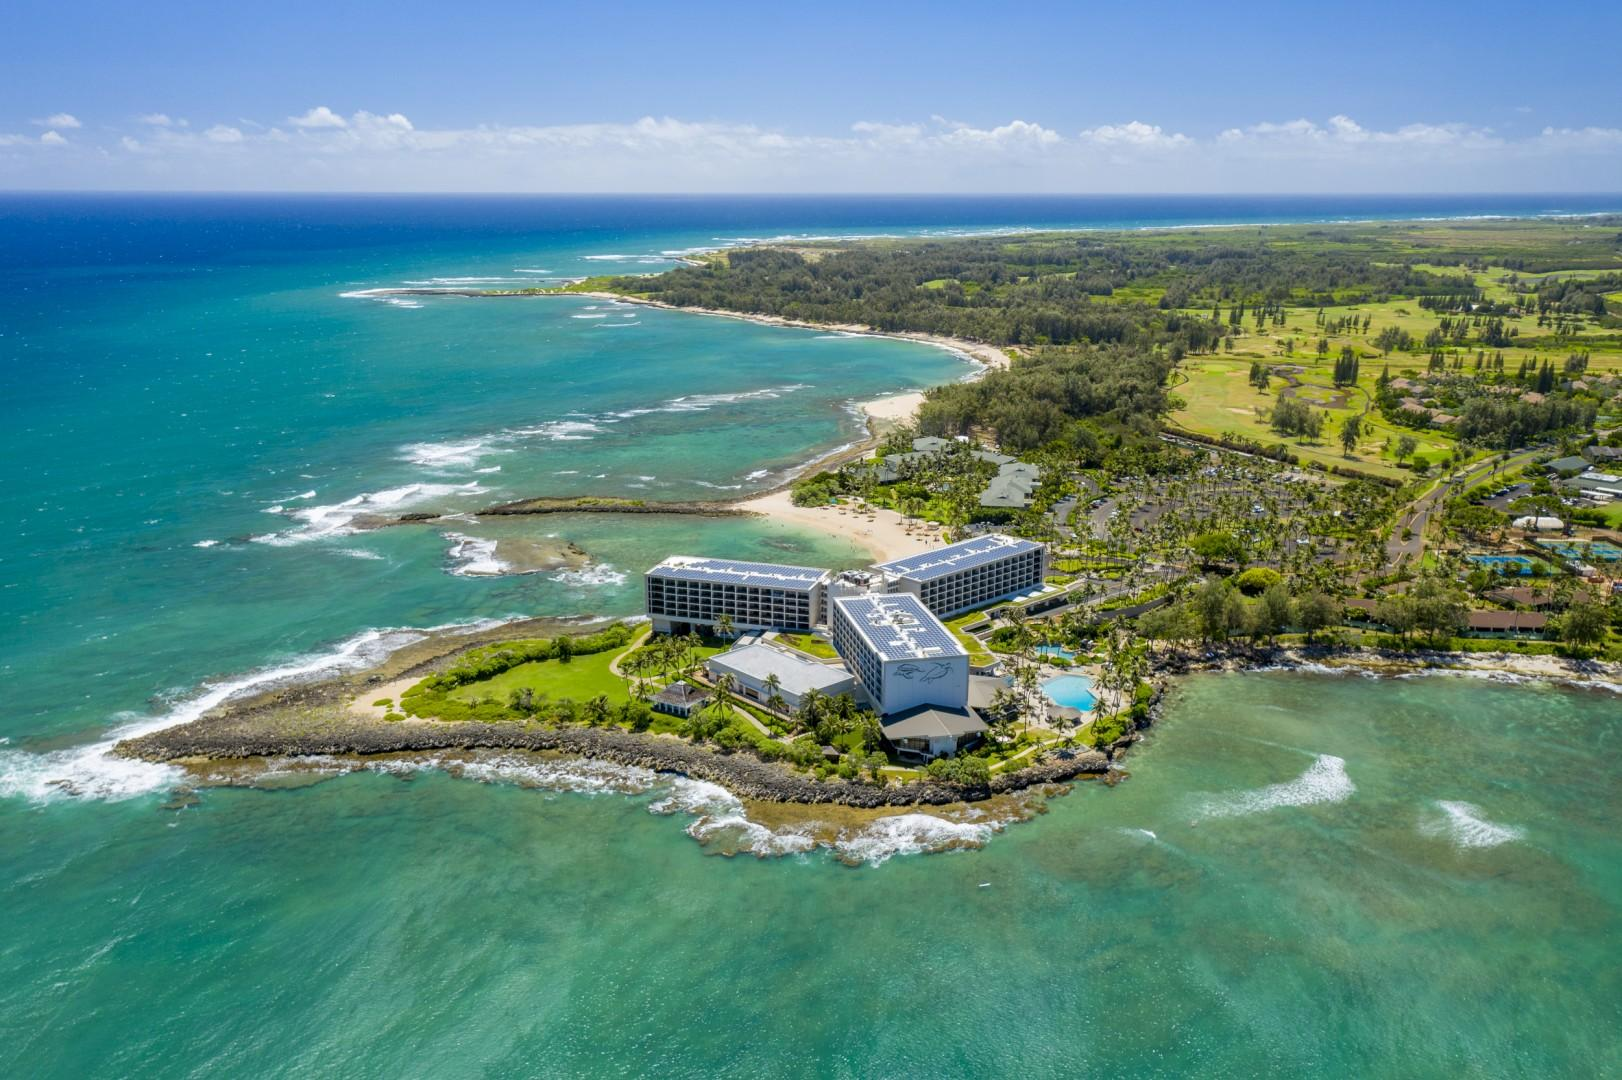 Turtle Bay Resort aerial view